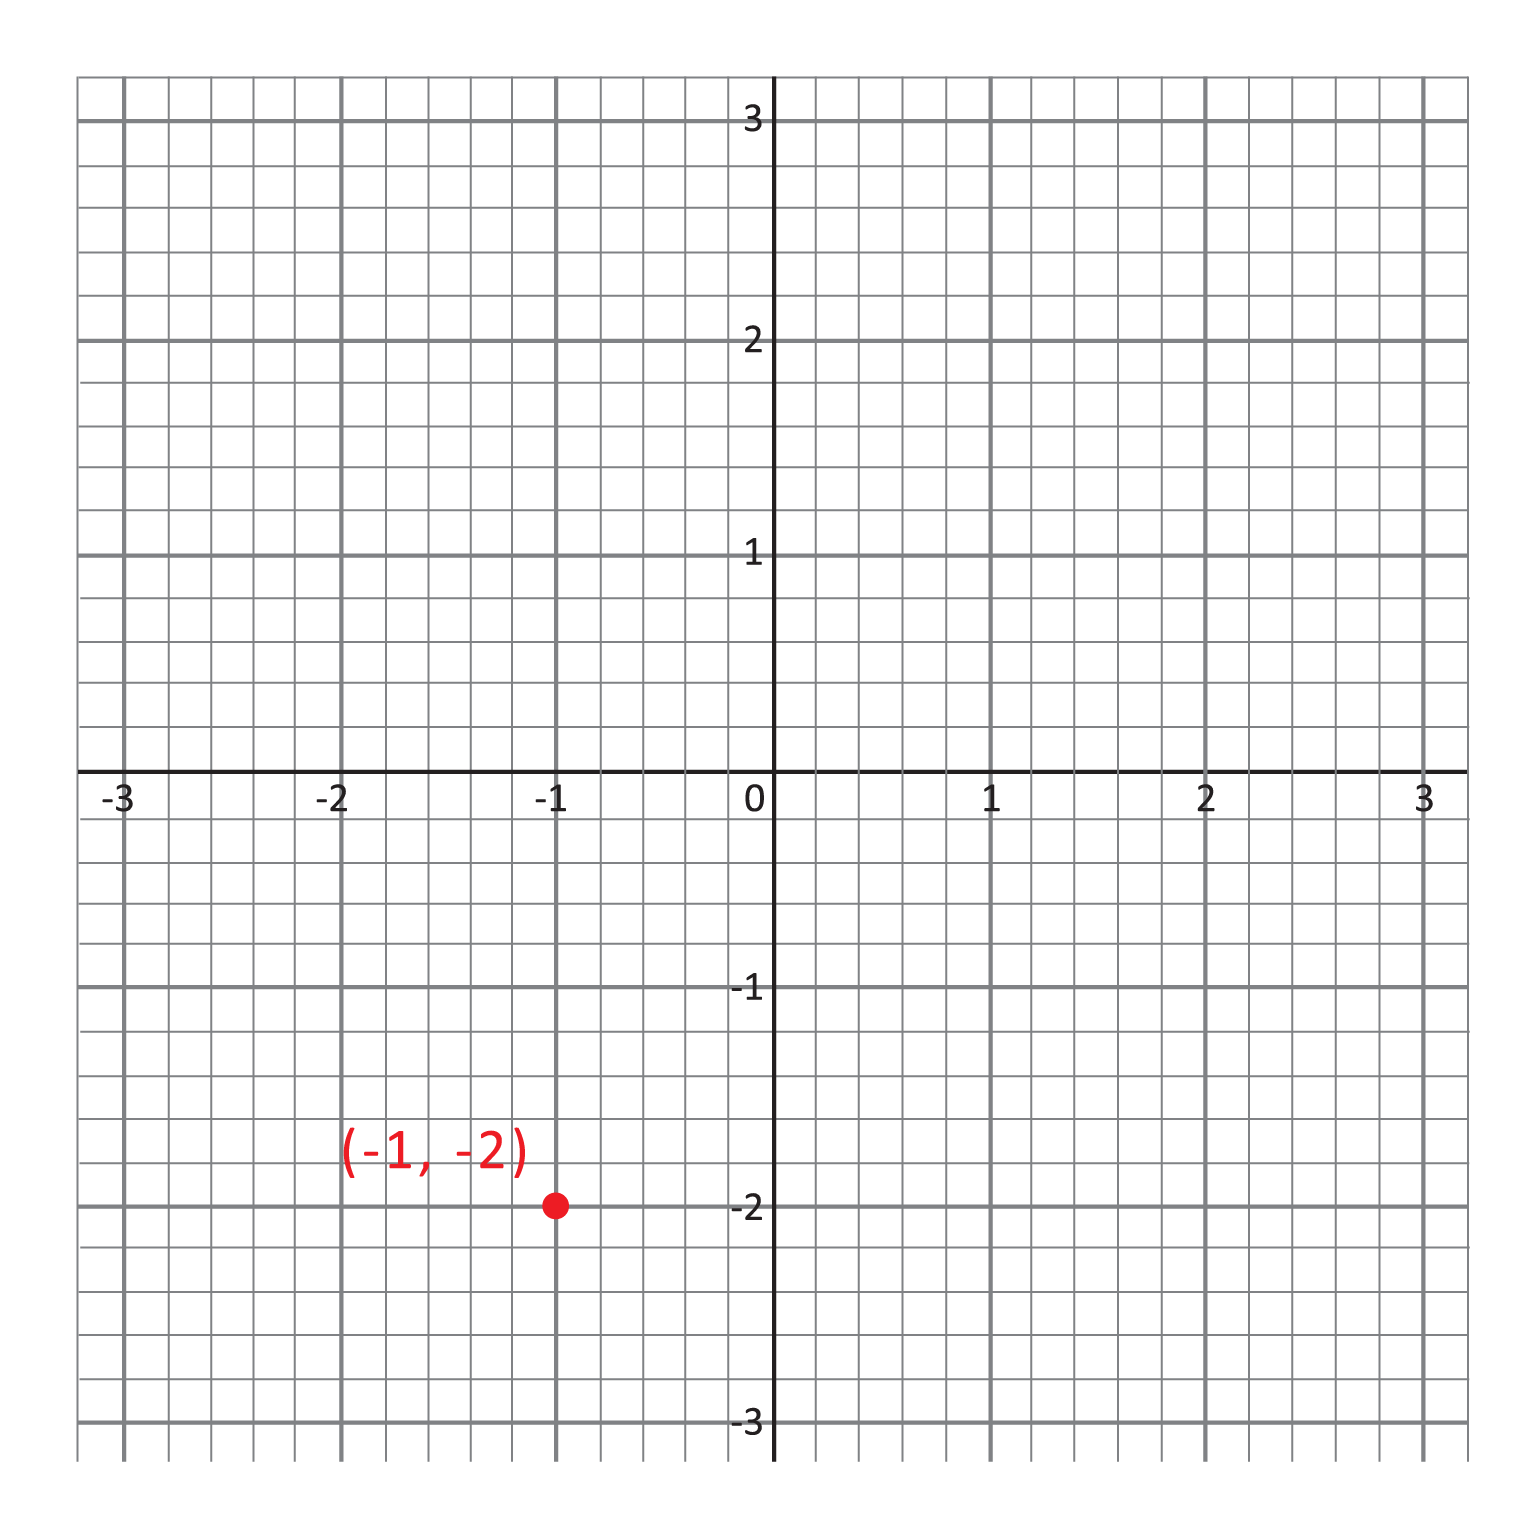 coordinate grid, red point at (negative 1, negative 2), point is labeled